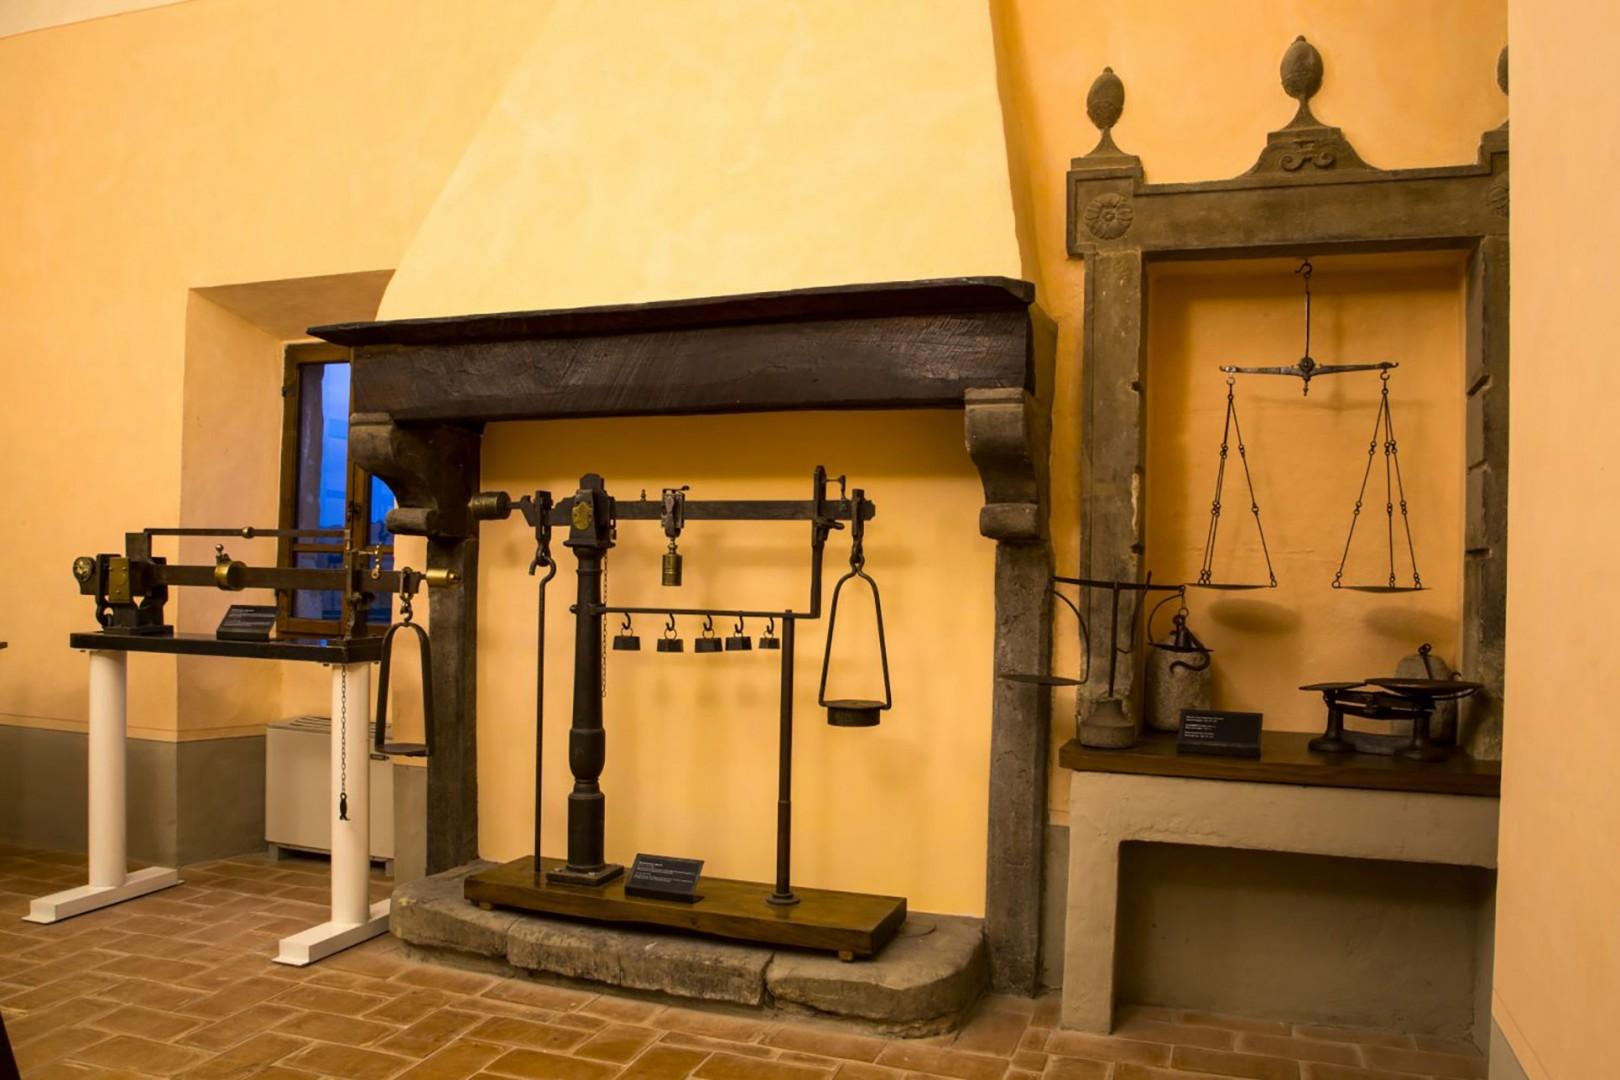 The Museum of Scales interactively shows 600 years of history of weighing machines. Good for kids.